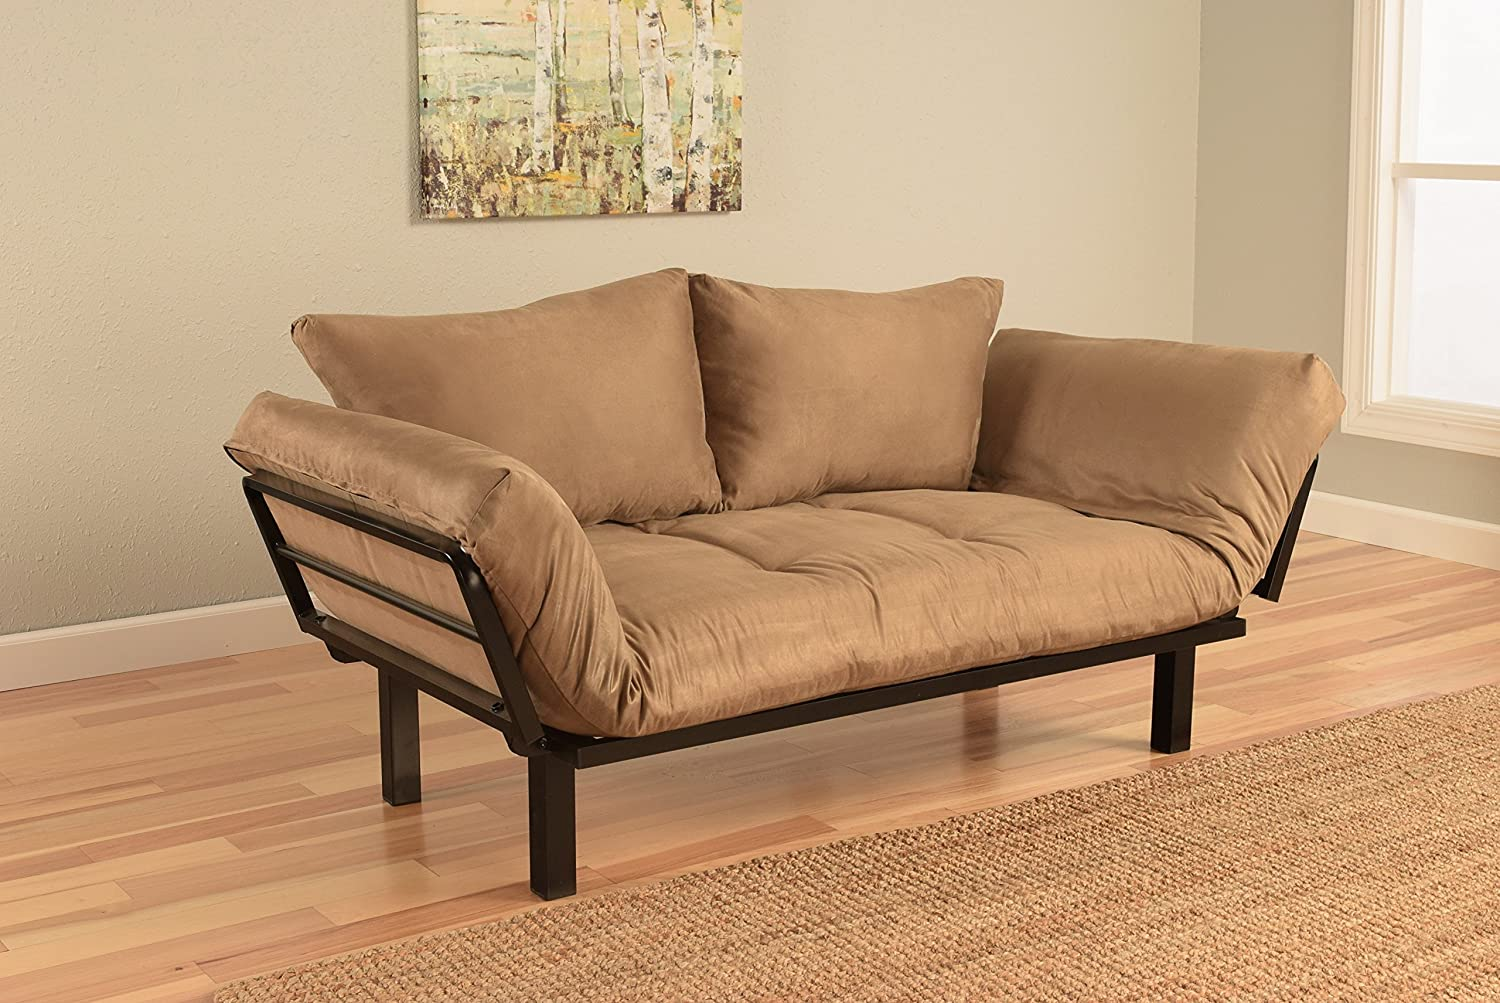 Jerry Sales Bright Day Twin Size Bed Futon Metal Frame, Many Color Fabrics to Choose (Peat)